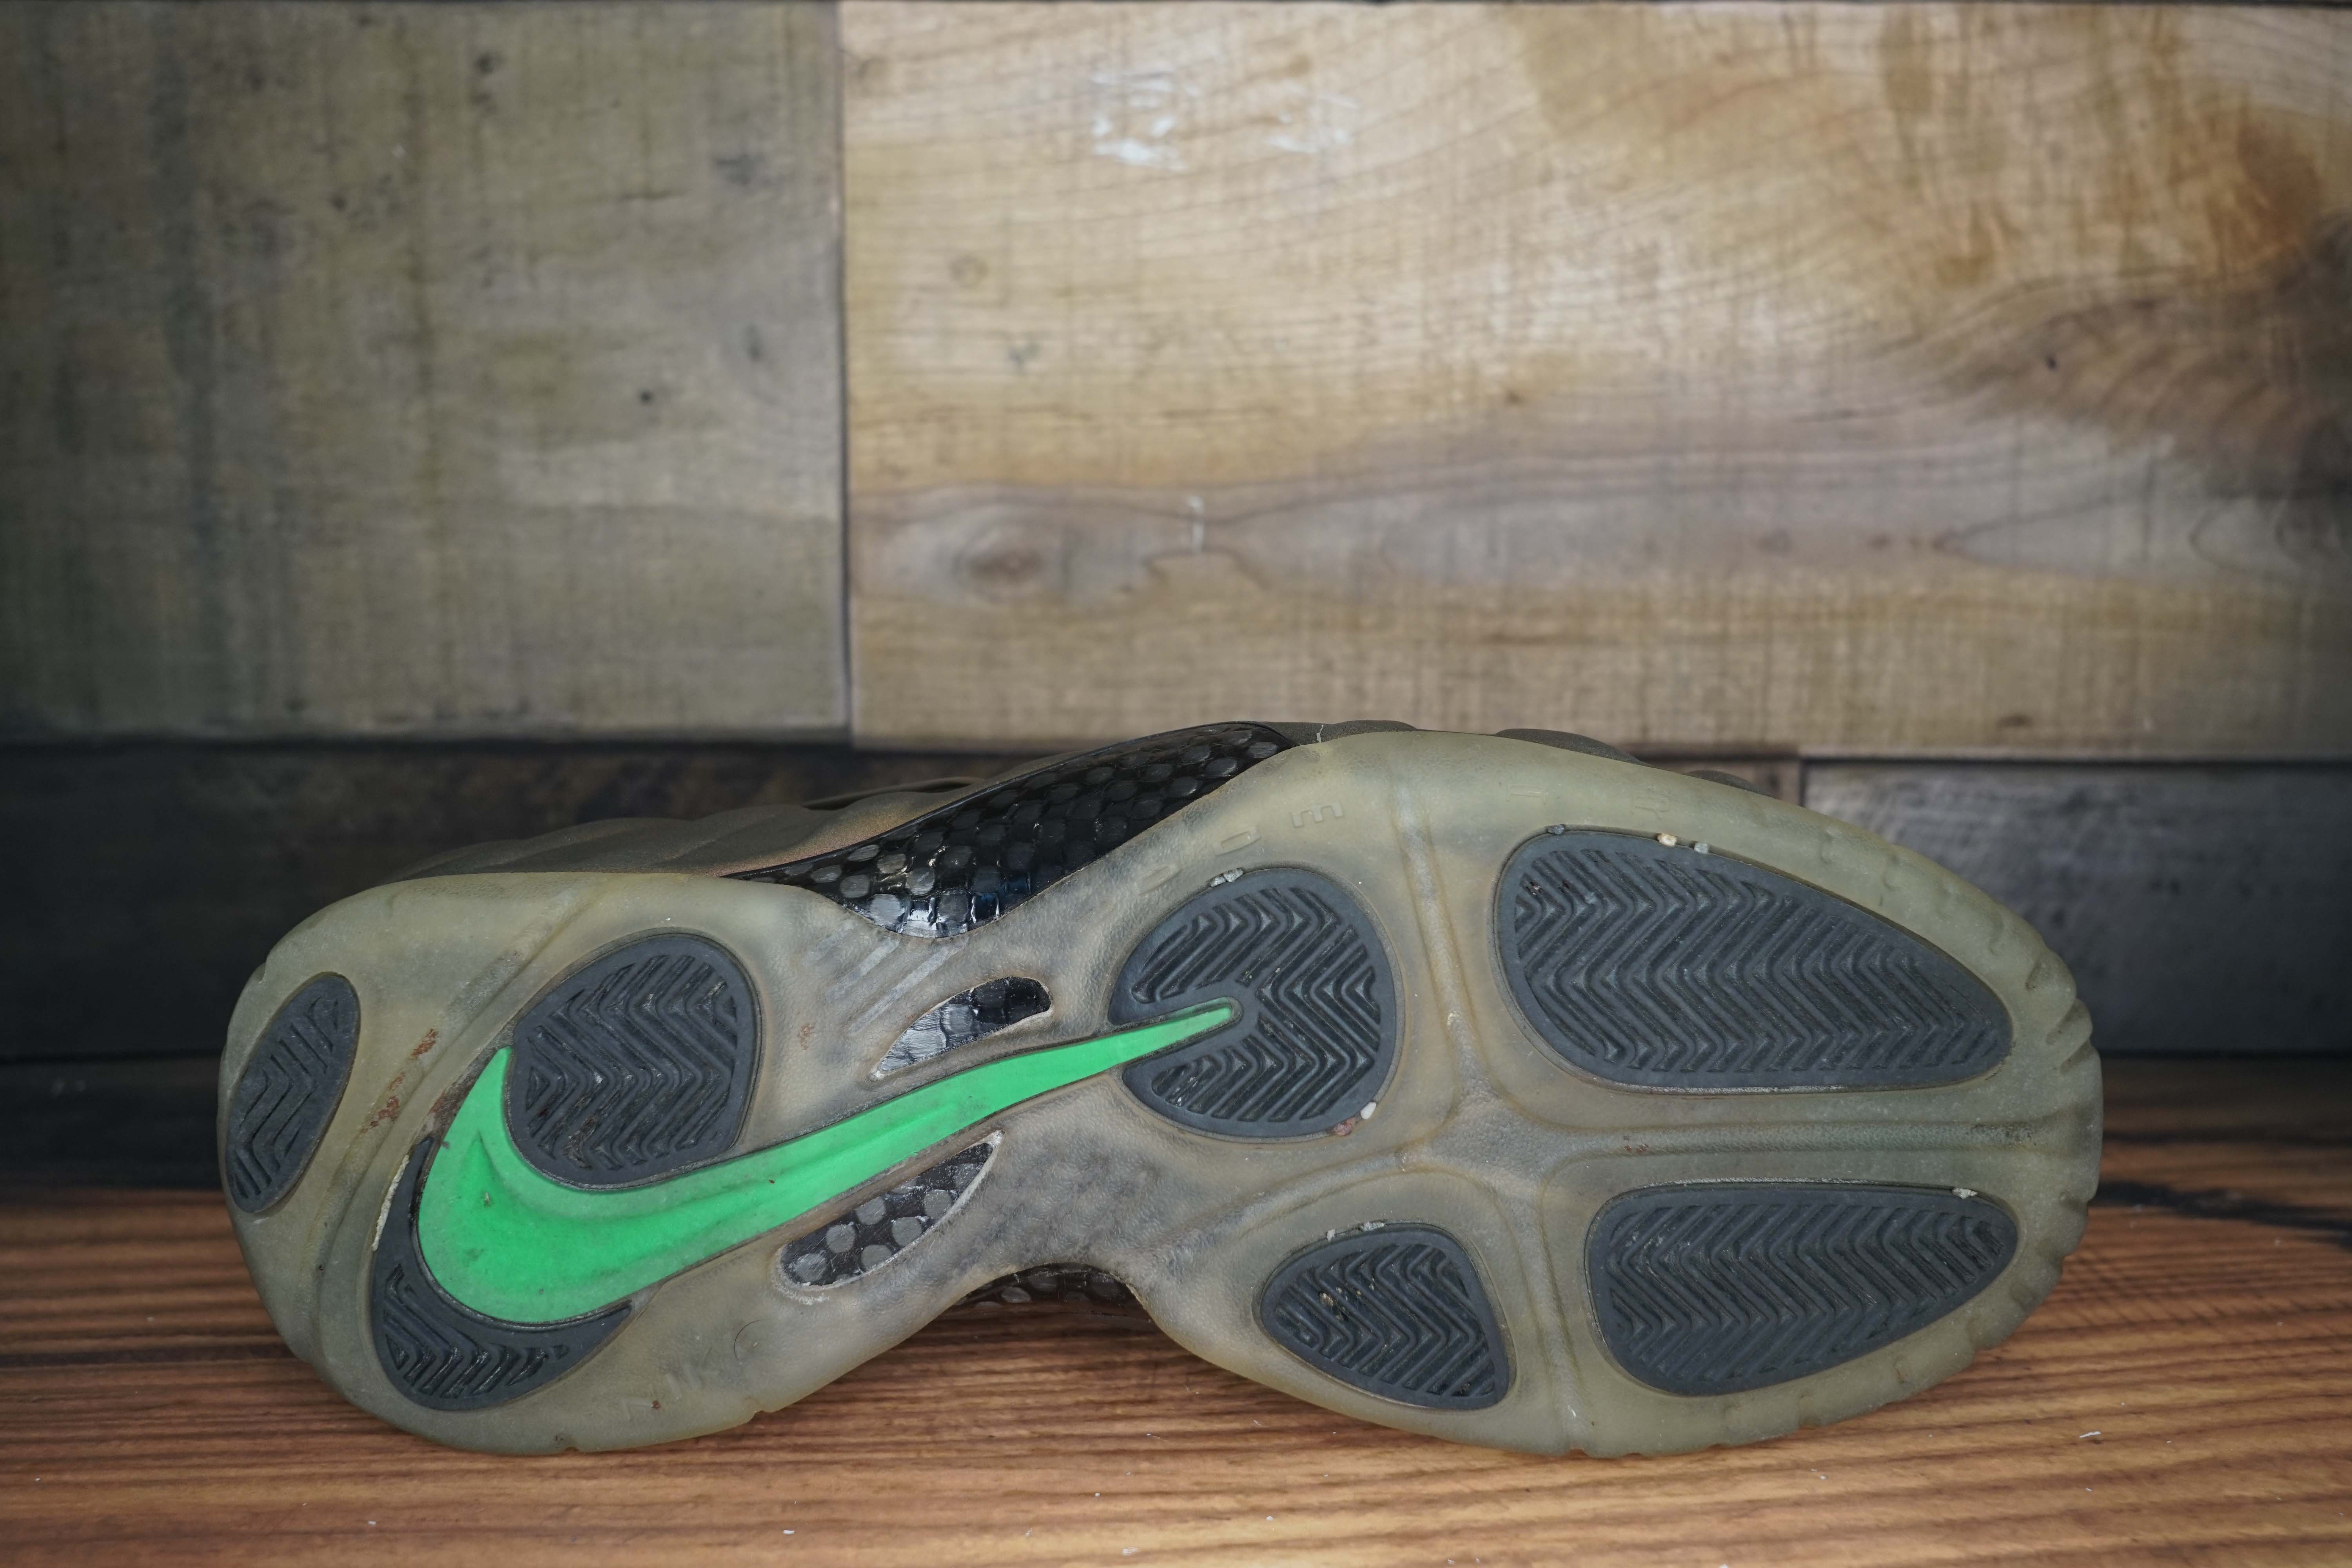 Foamposite-Pro-GYM-GREEN-2012-Used-Original-Box-Size-8.5-1920-1_10744D.jpg